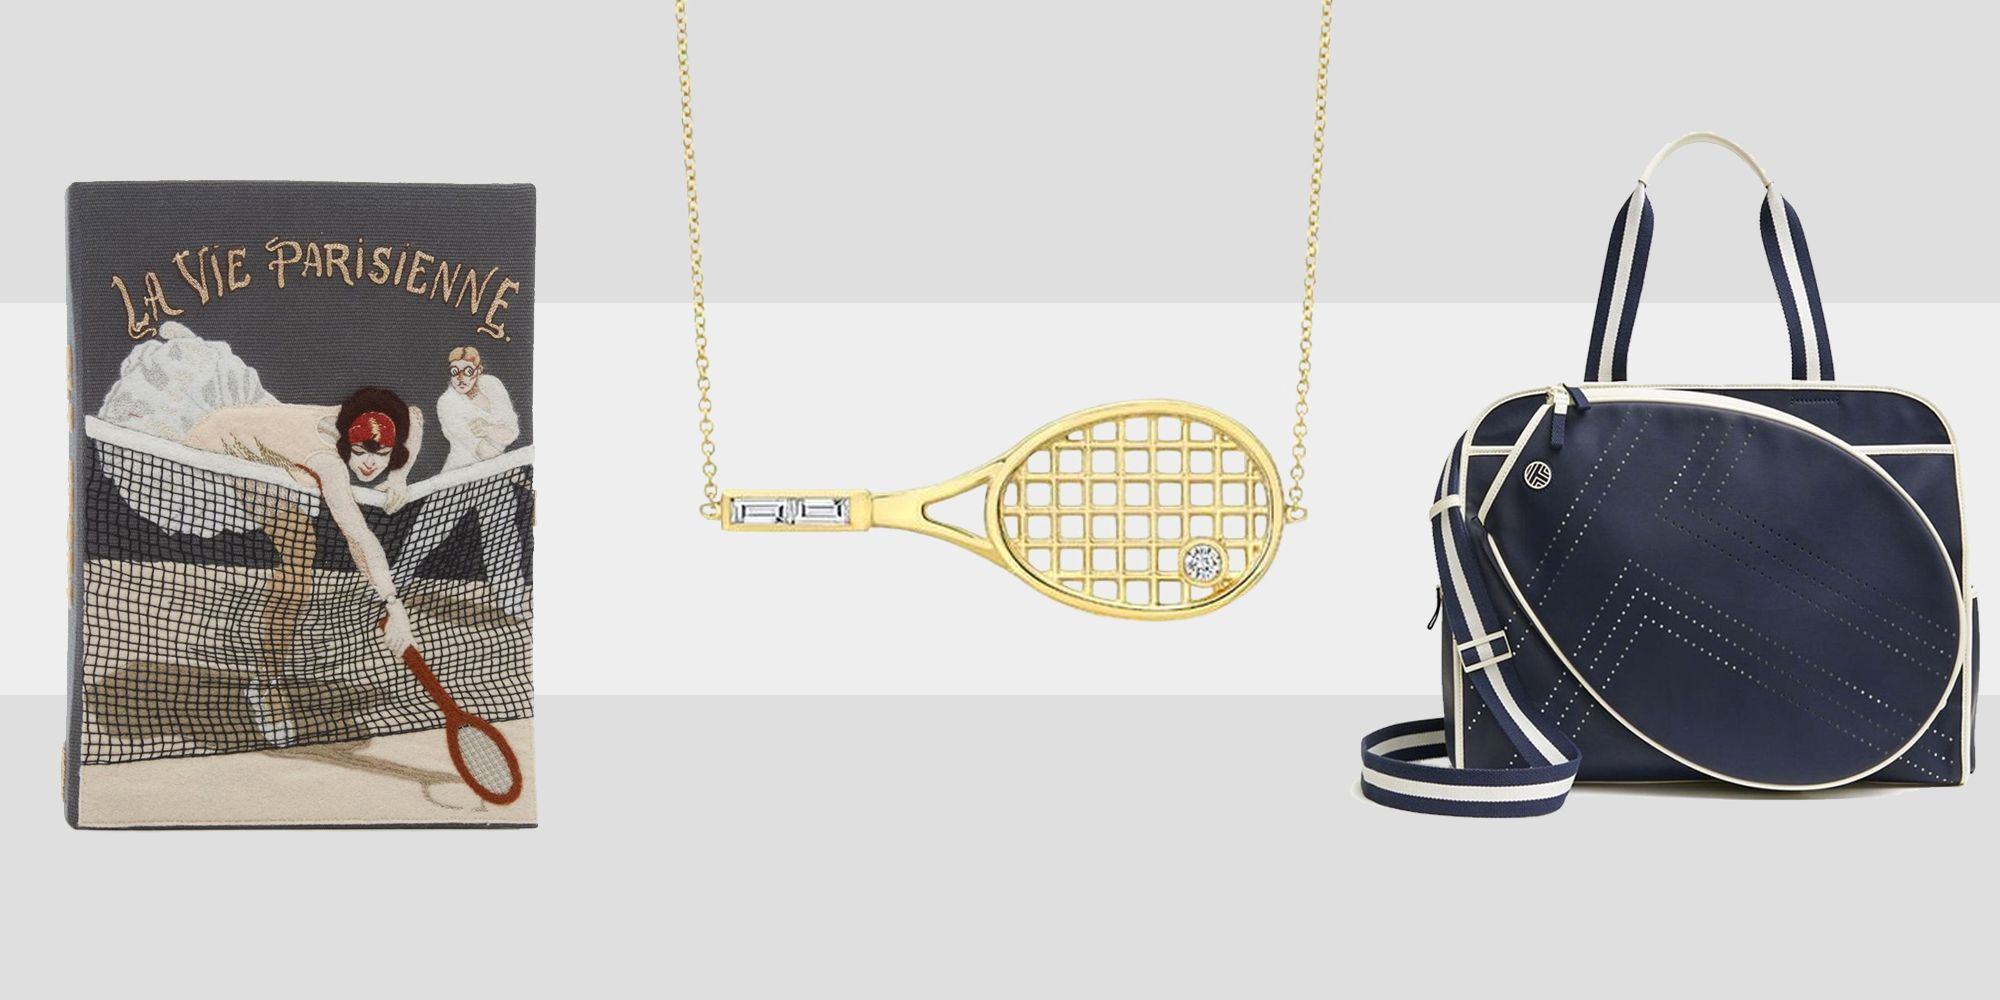 The Best Gifts for Tennis Lovers